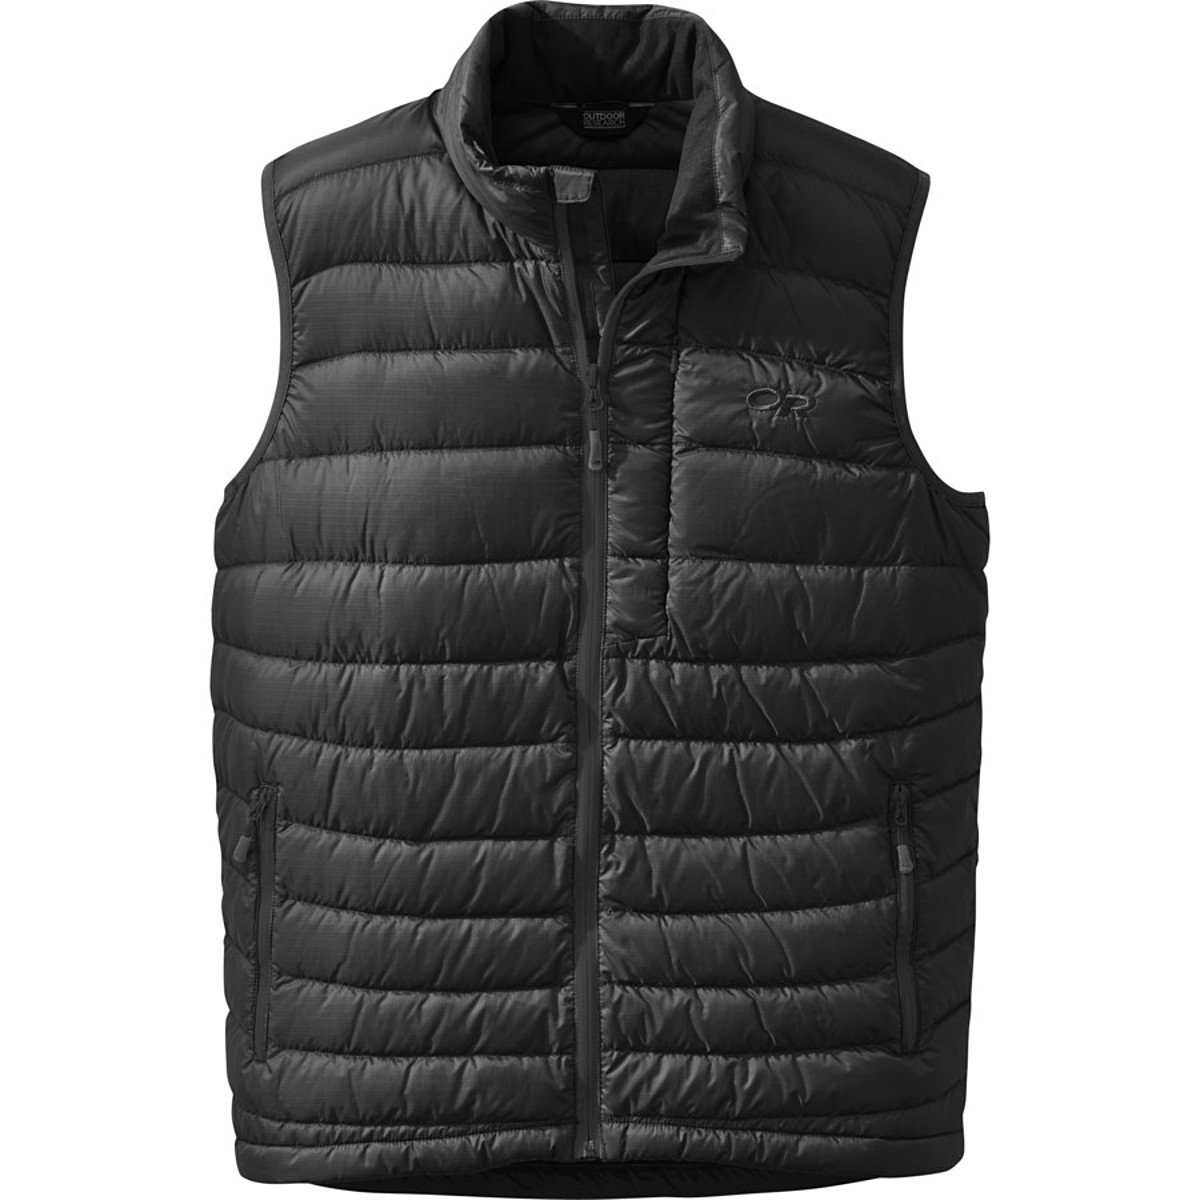 Outdoor Research Men's Transcendent Vest (Black, Small)